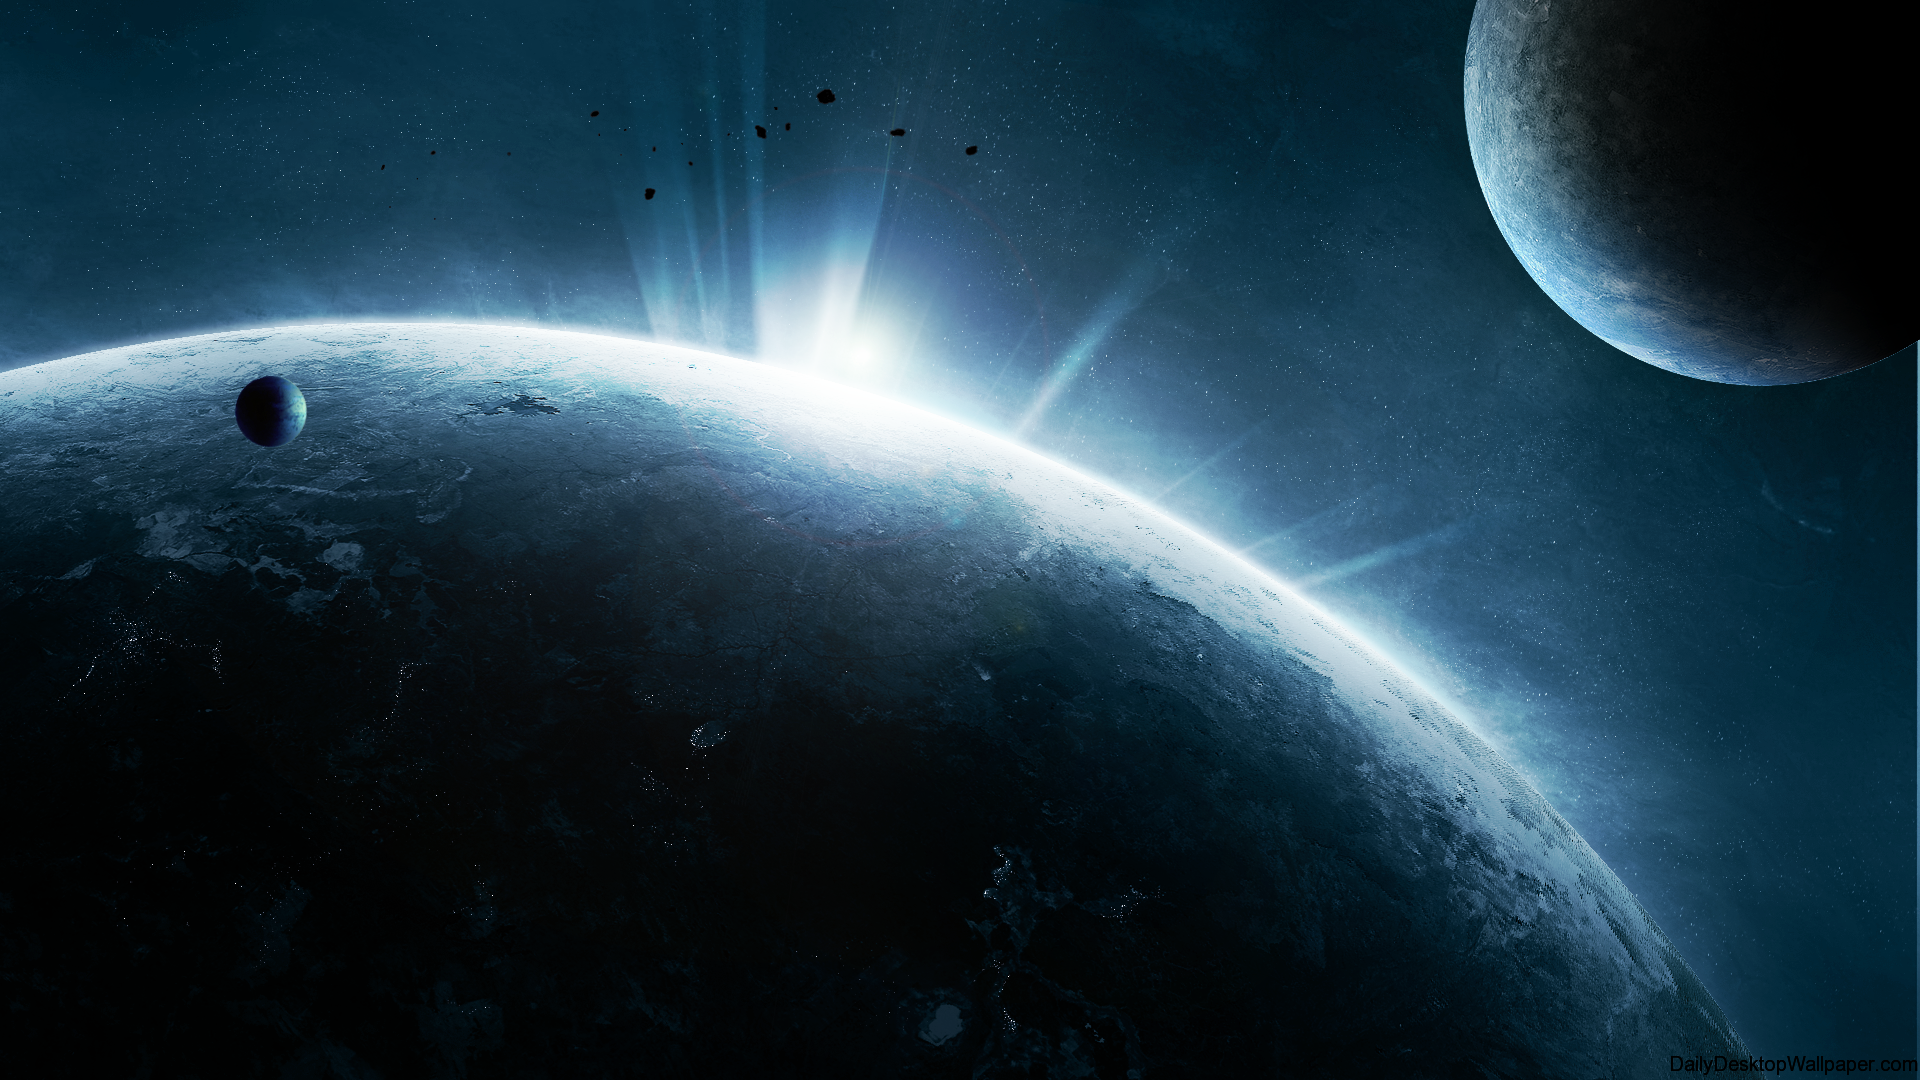 3d Animated Wallpaper Windows 7 Free Download Deep Space Wallpaper Hd Wallpapers